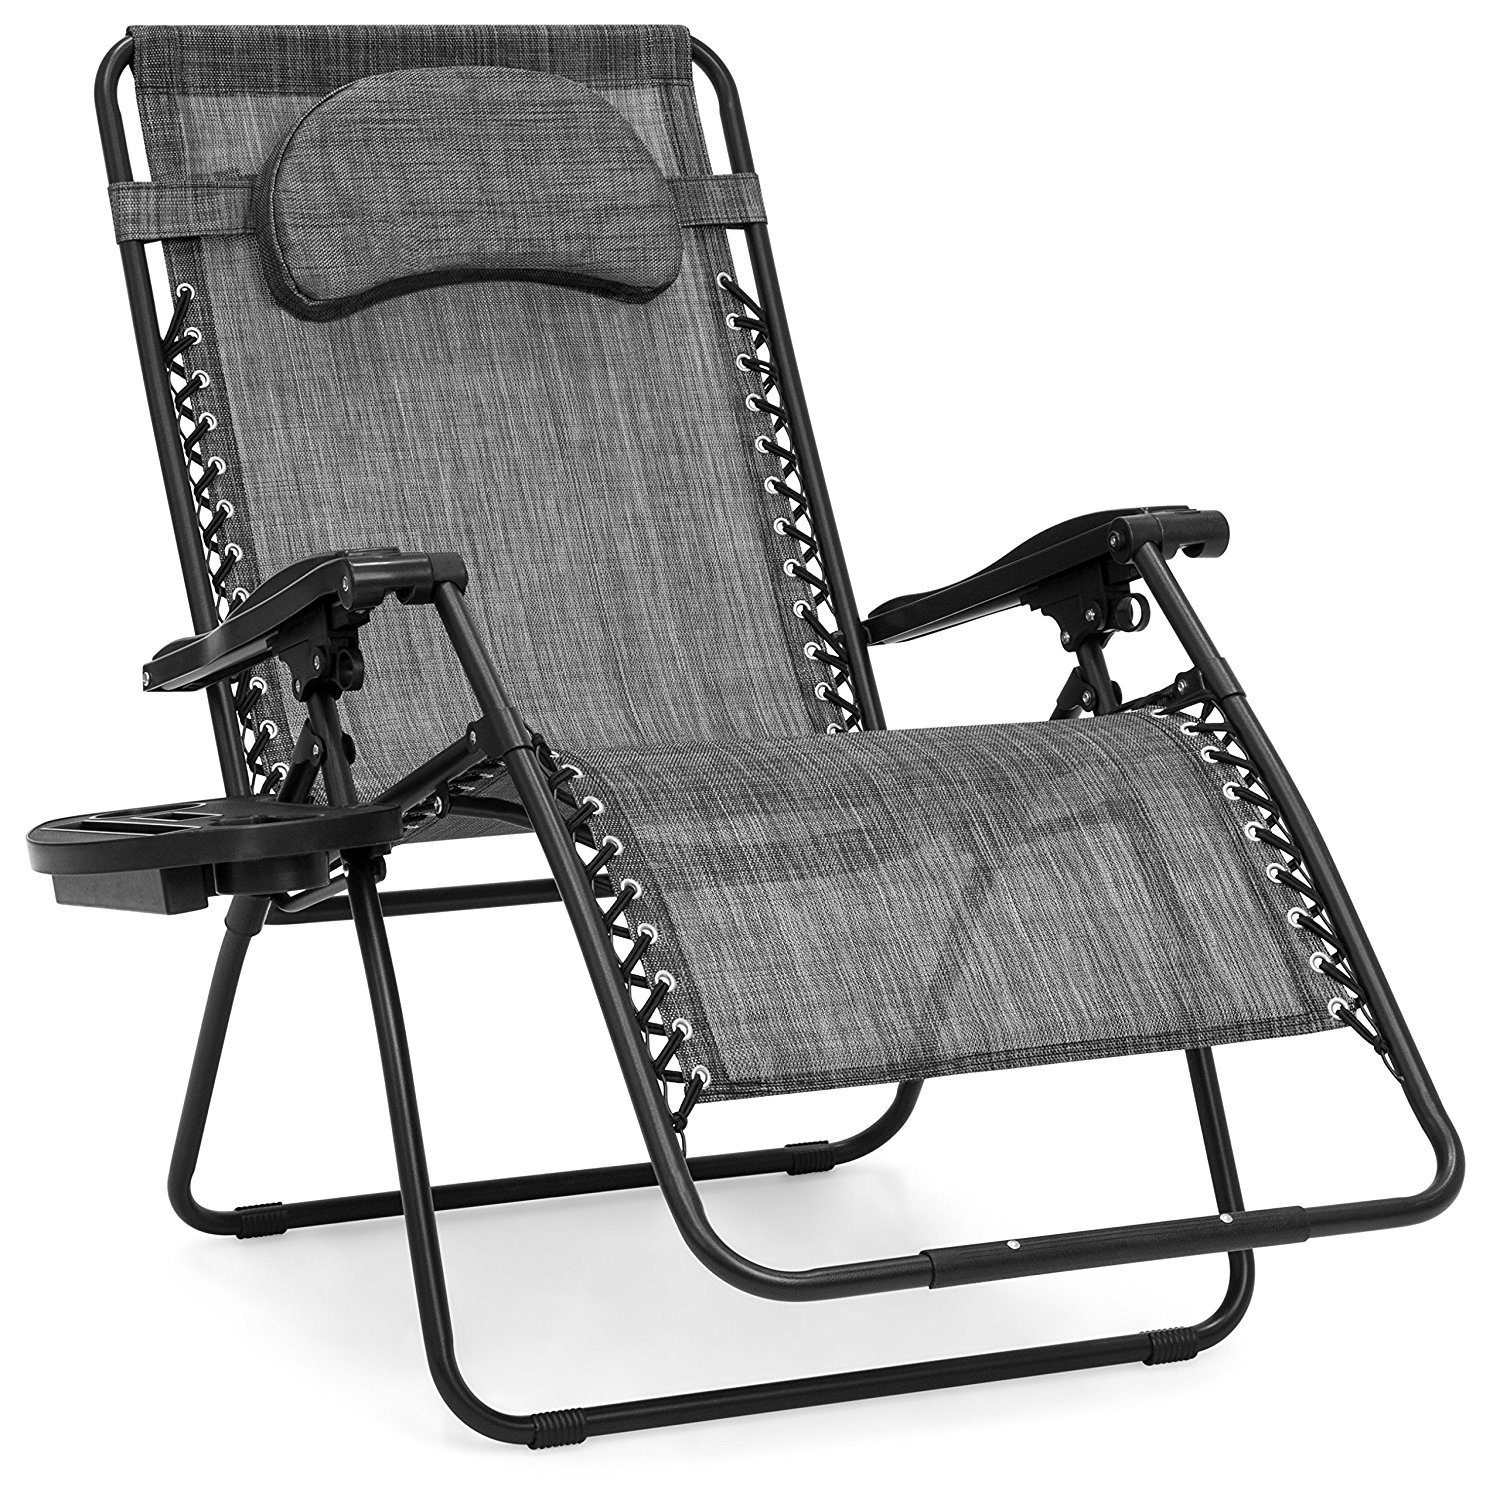 Outdoor Double Folding Bigger Recliner Zero Gravity Chair Extra Wider Size Sun Lounger with Pillow